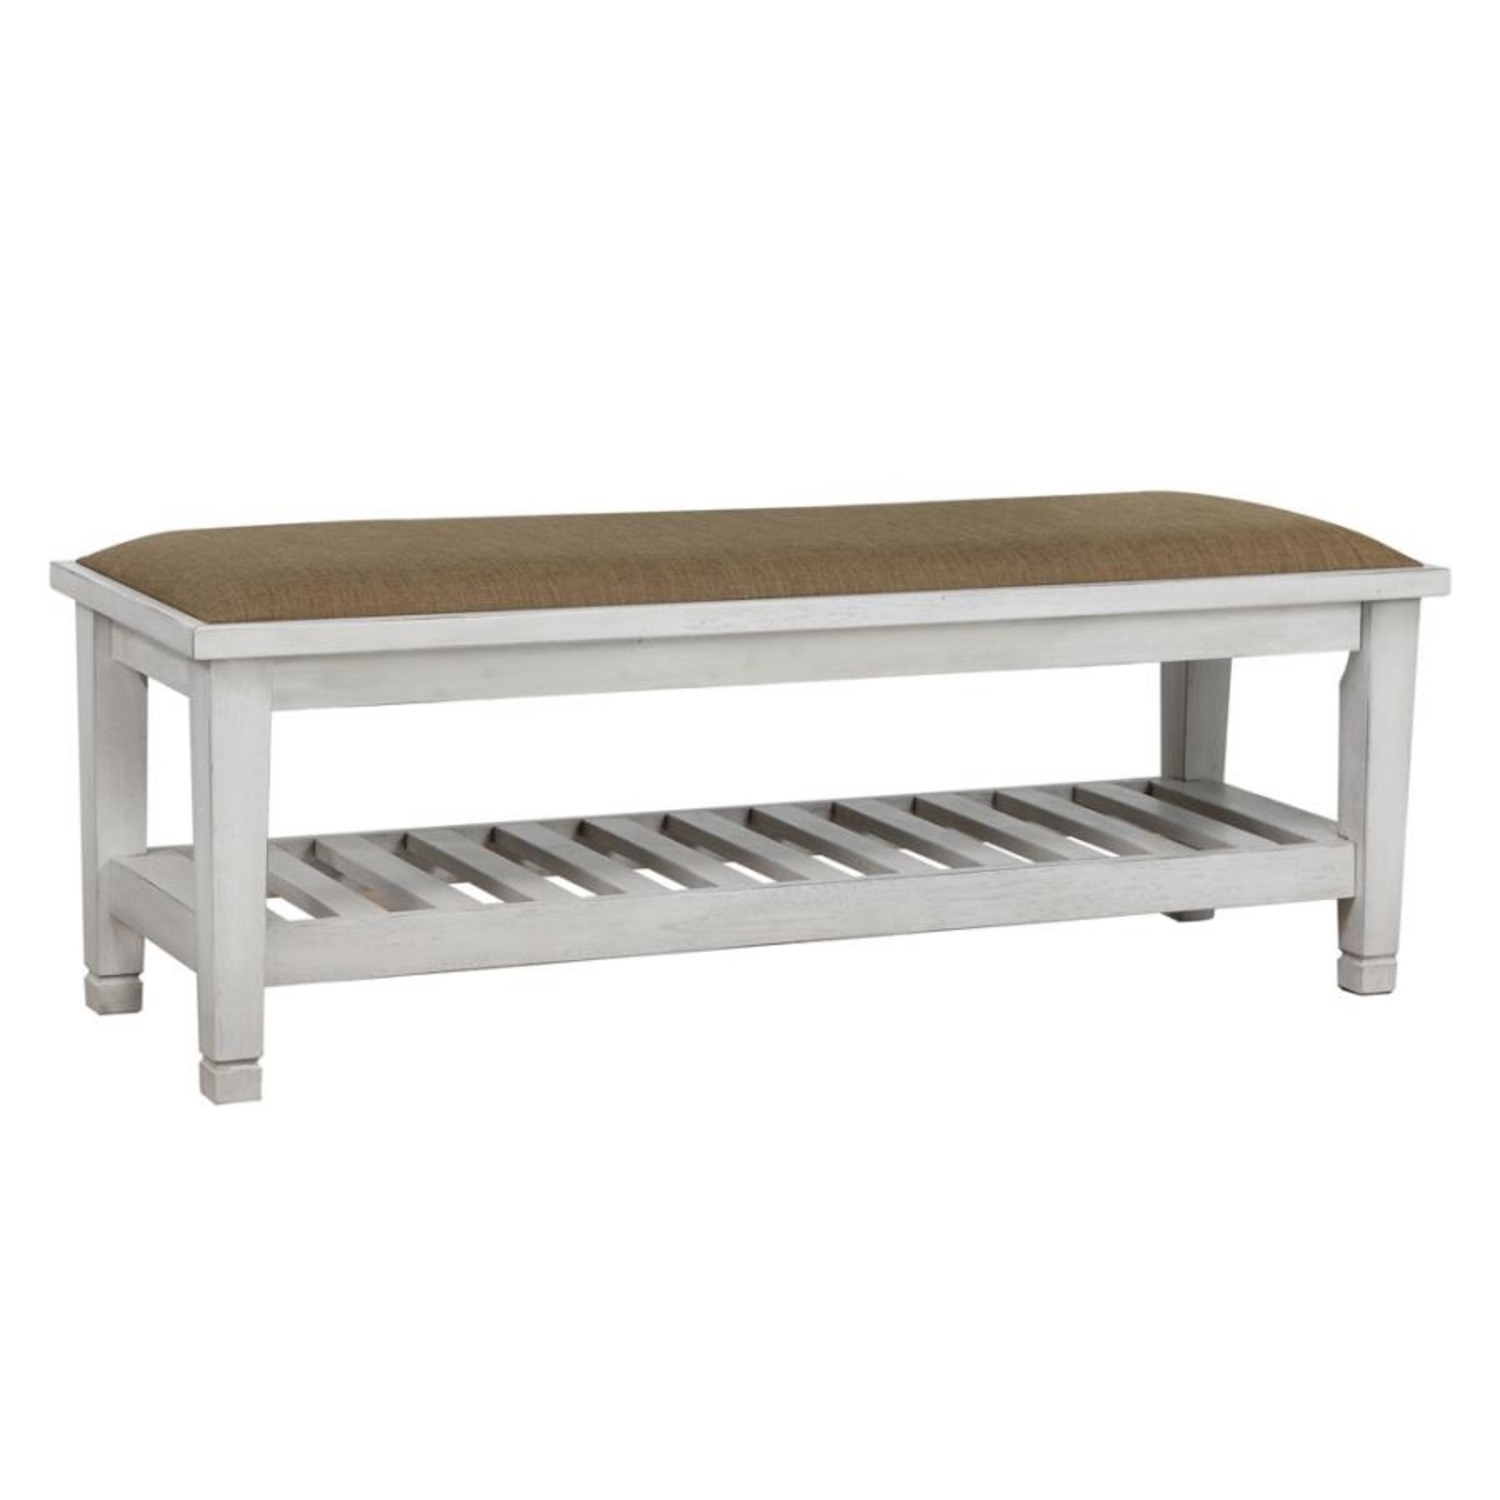 Bench In Antique White Finish W/ Brown Fabric - image-0